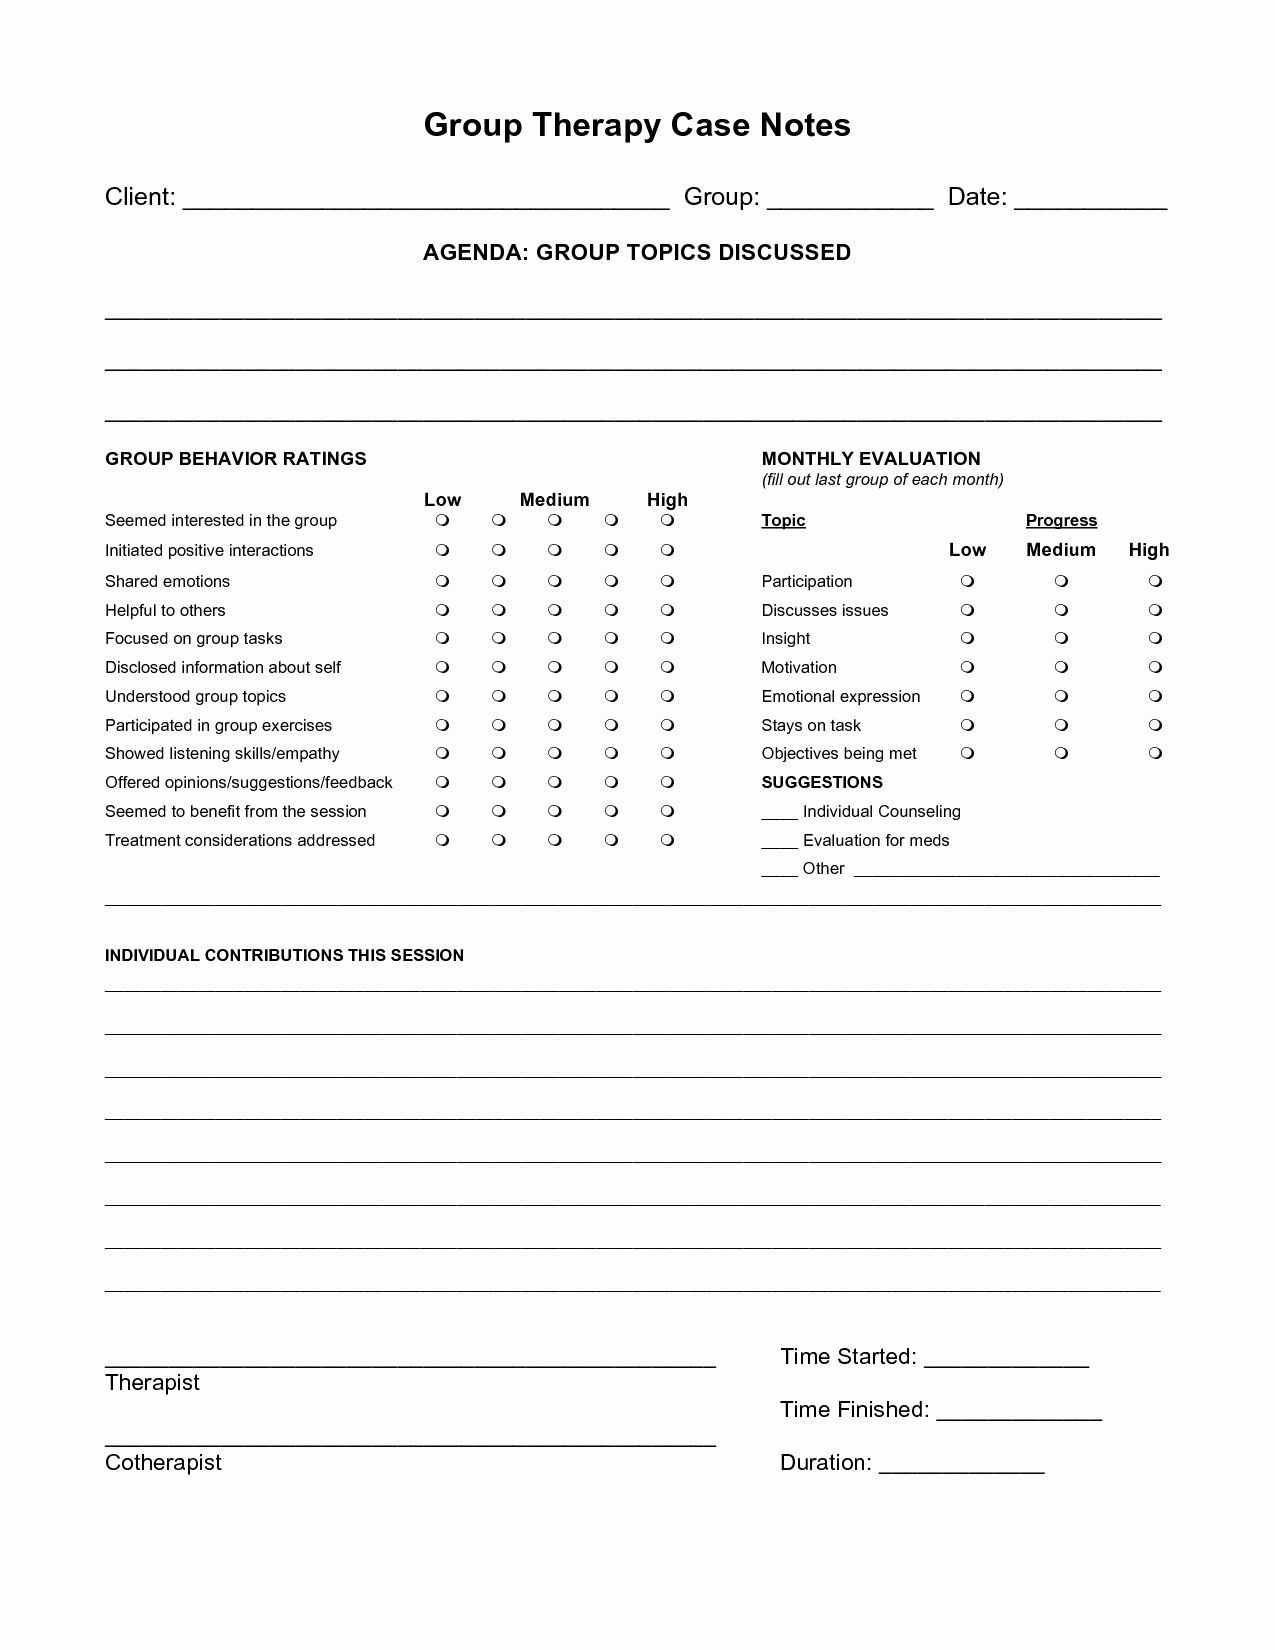 Free Case Note Templates Group therapy Case Notes